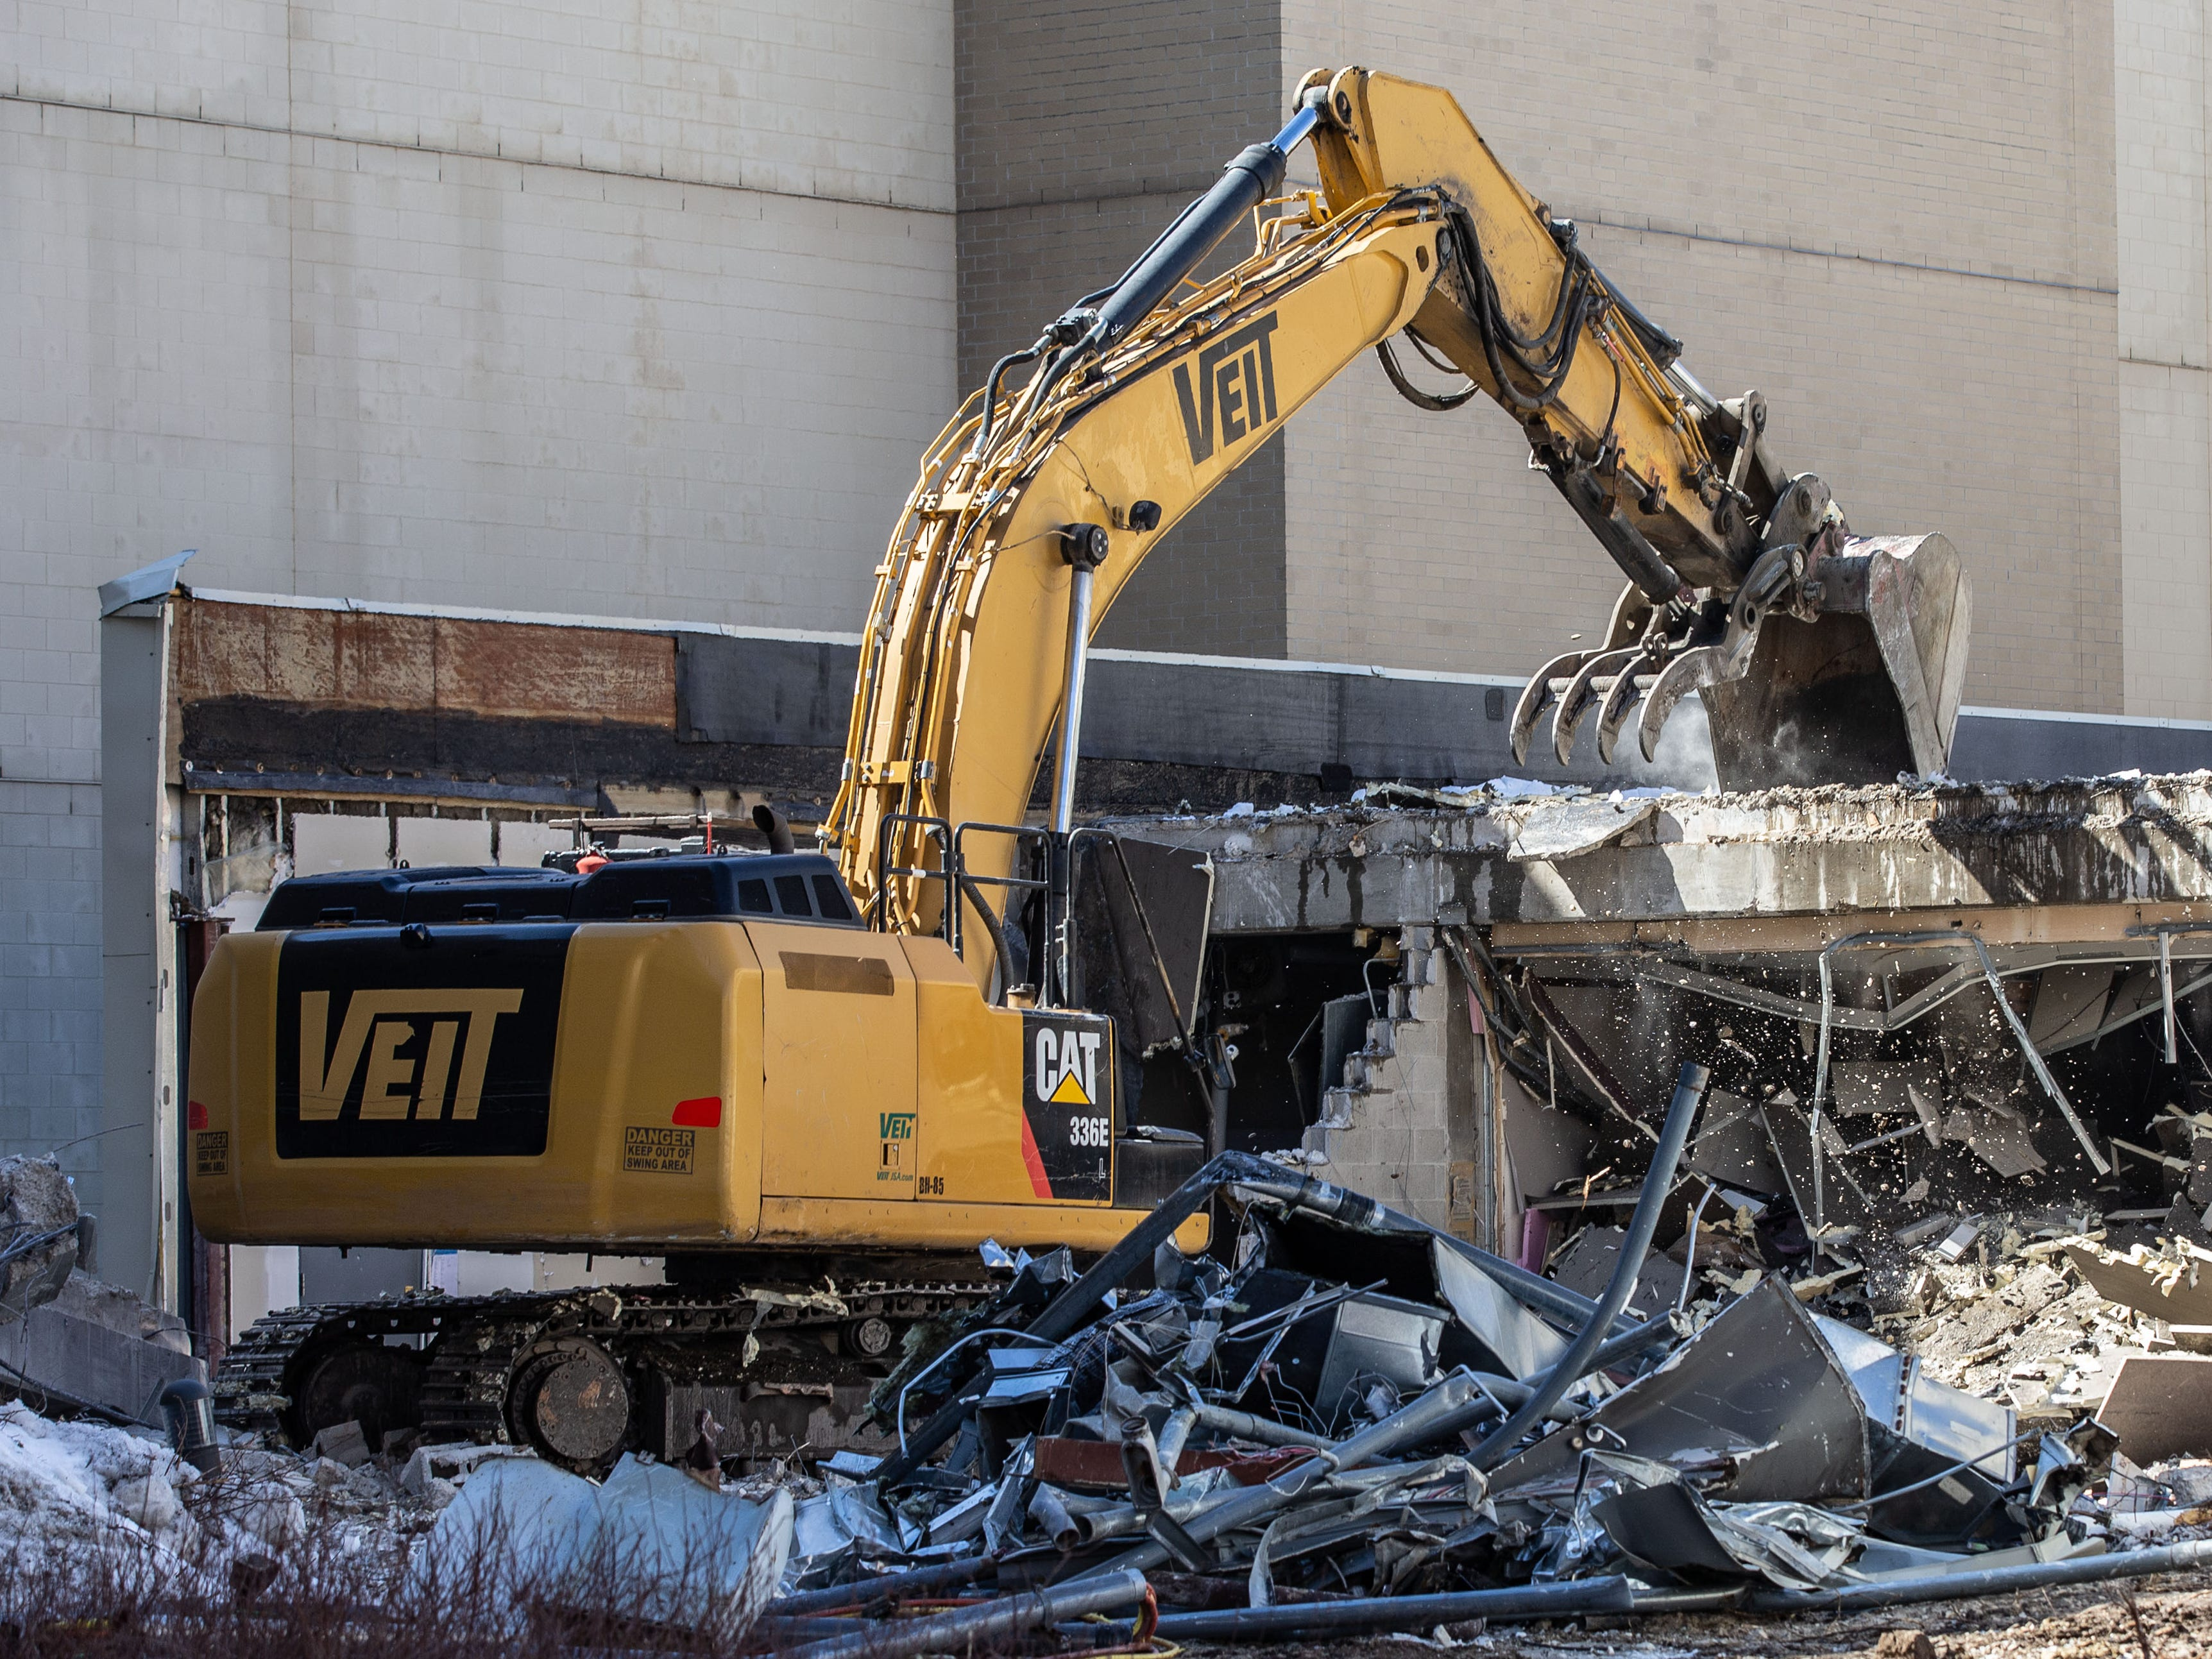 Crews work to demolish the old Waukesha County intake court building on Monday, March 11, 2019. The 52,000-square-foot building at 515 W. Moreland Blvd. is being removed to make way for construction of a new 62,000-square-foot secure courtroom addition.